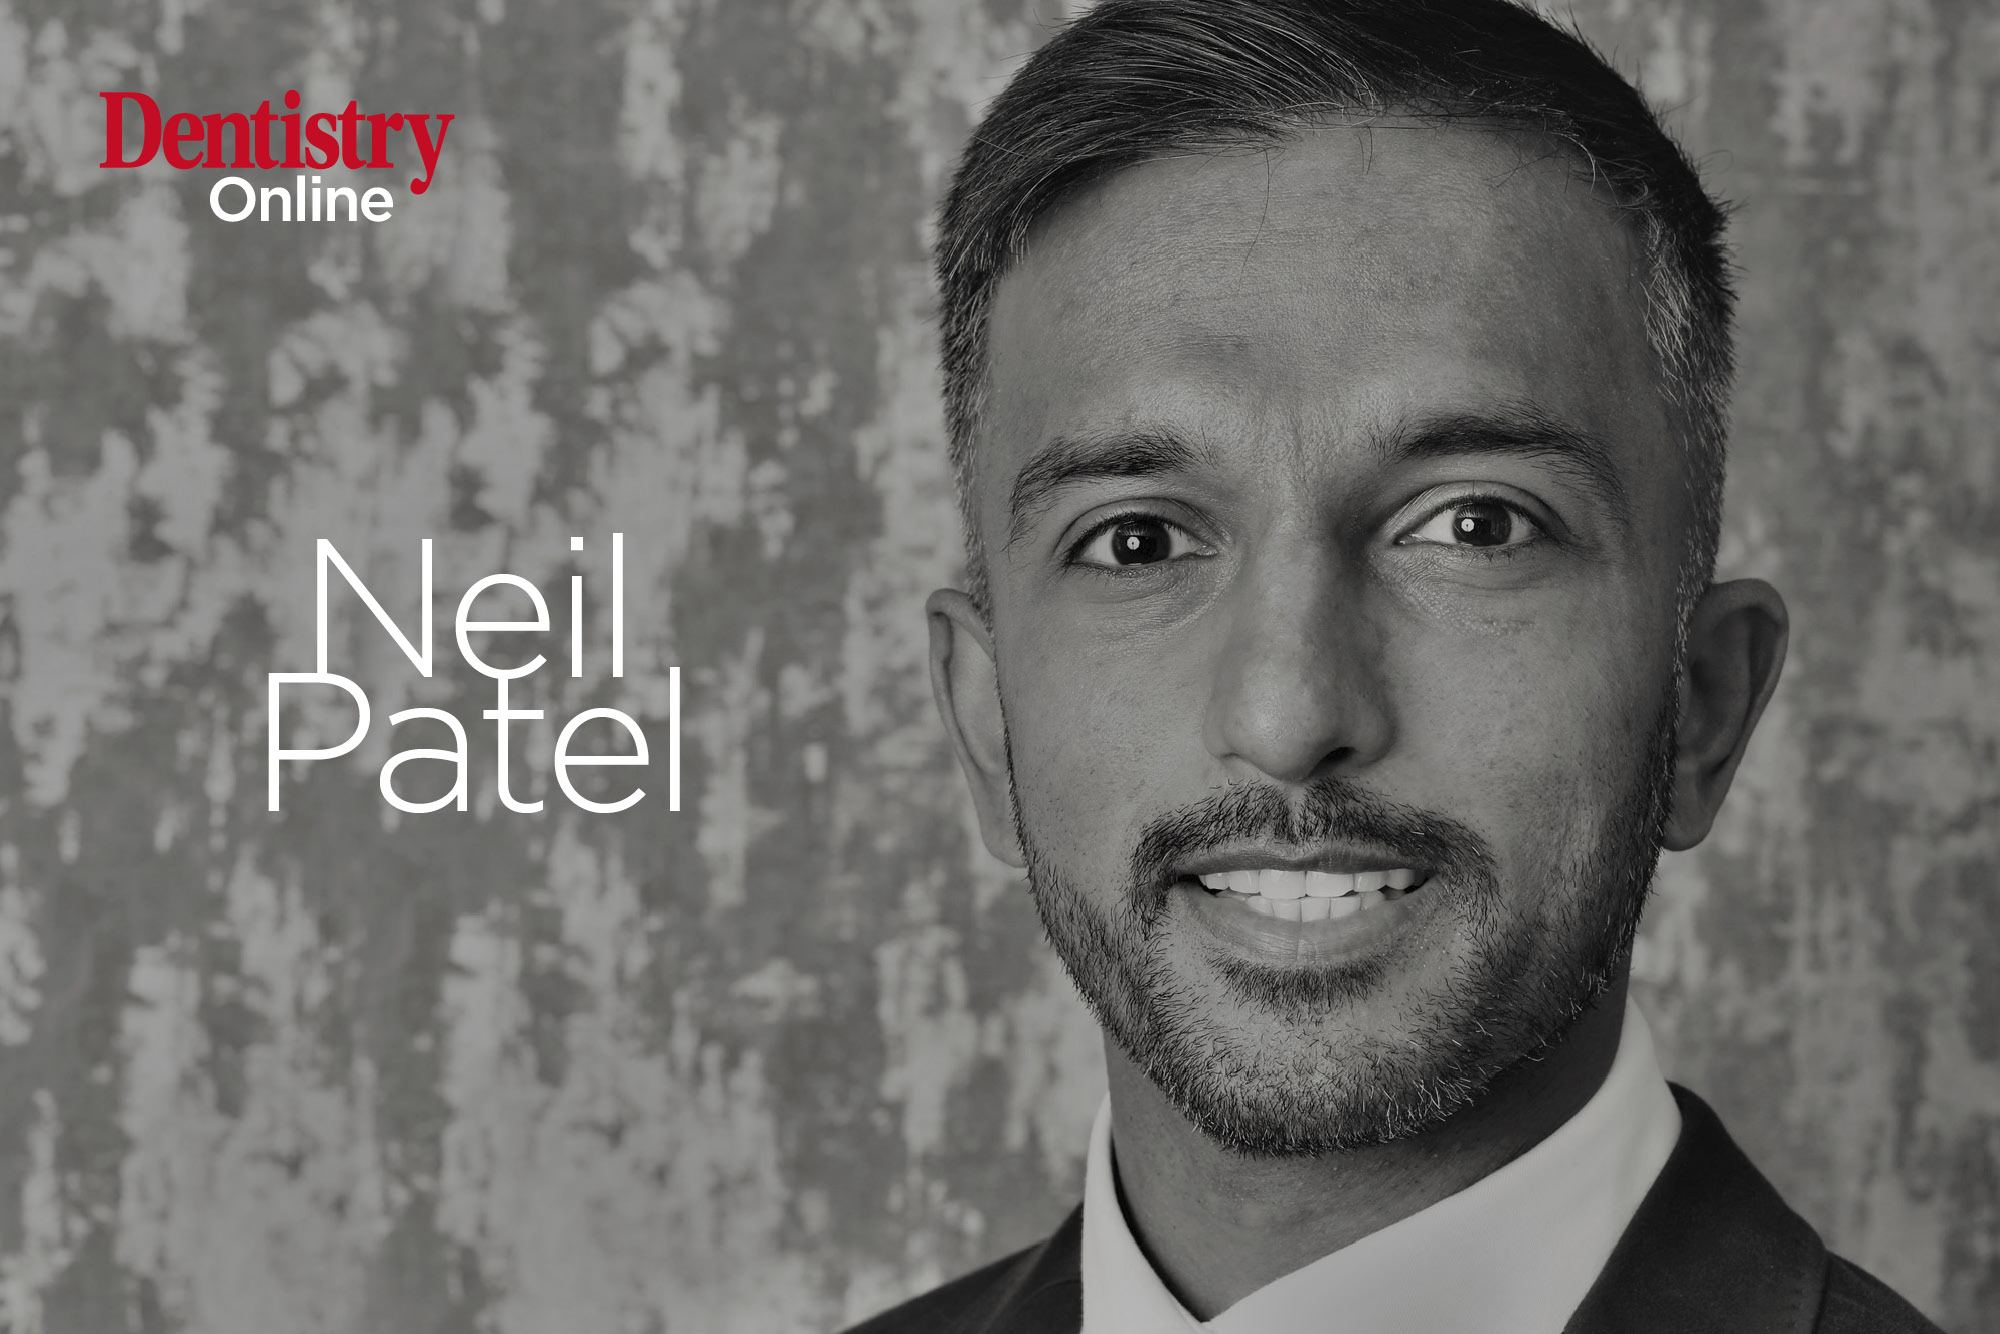 Orthodontist Neil Patel talks about the concerns and issues linked to direct-to-consumer aligners and why patient communication is crucial